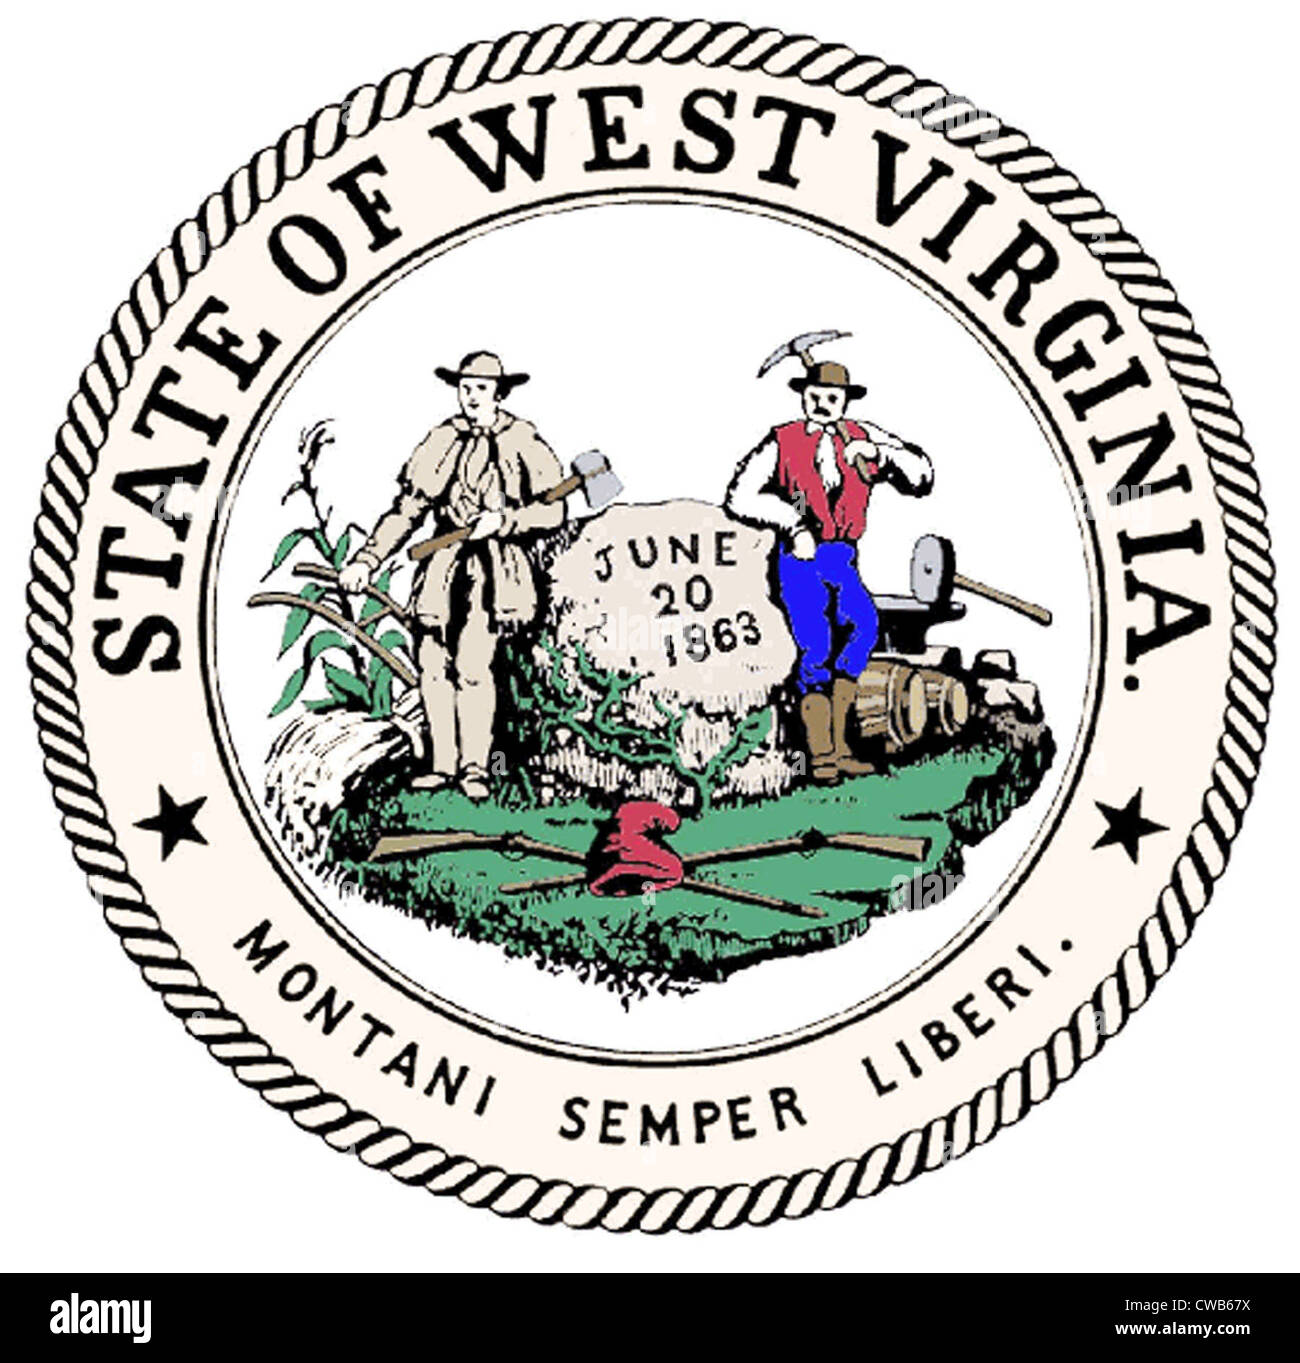 Great Seal of the State of West Virginia - Stock Image